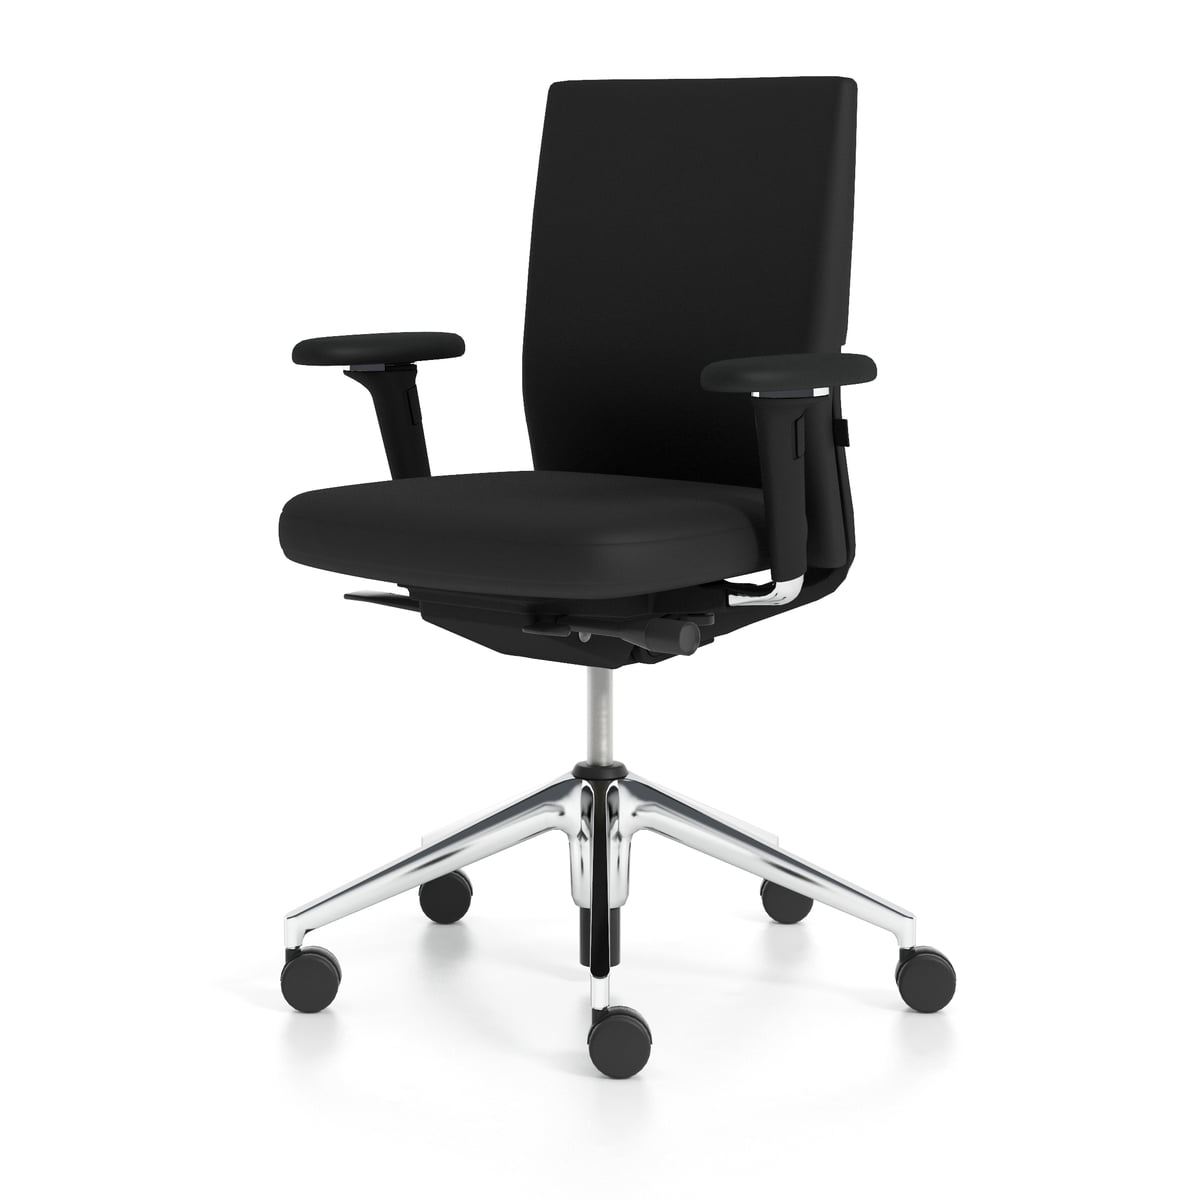 id soft office chair by vitra. Black Bedroom Furniture Sets. Home Design Ideas